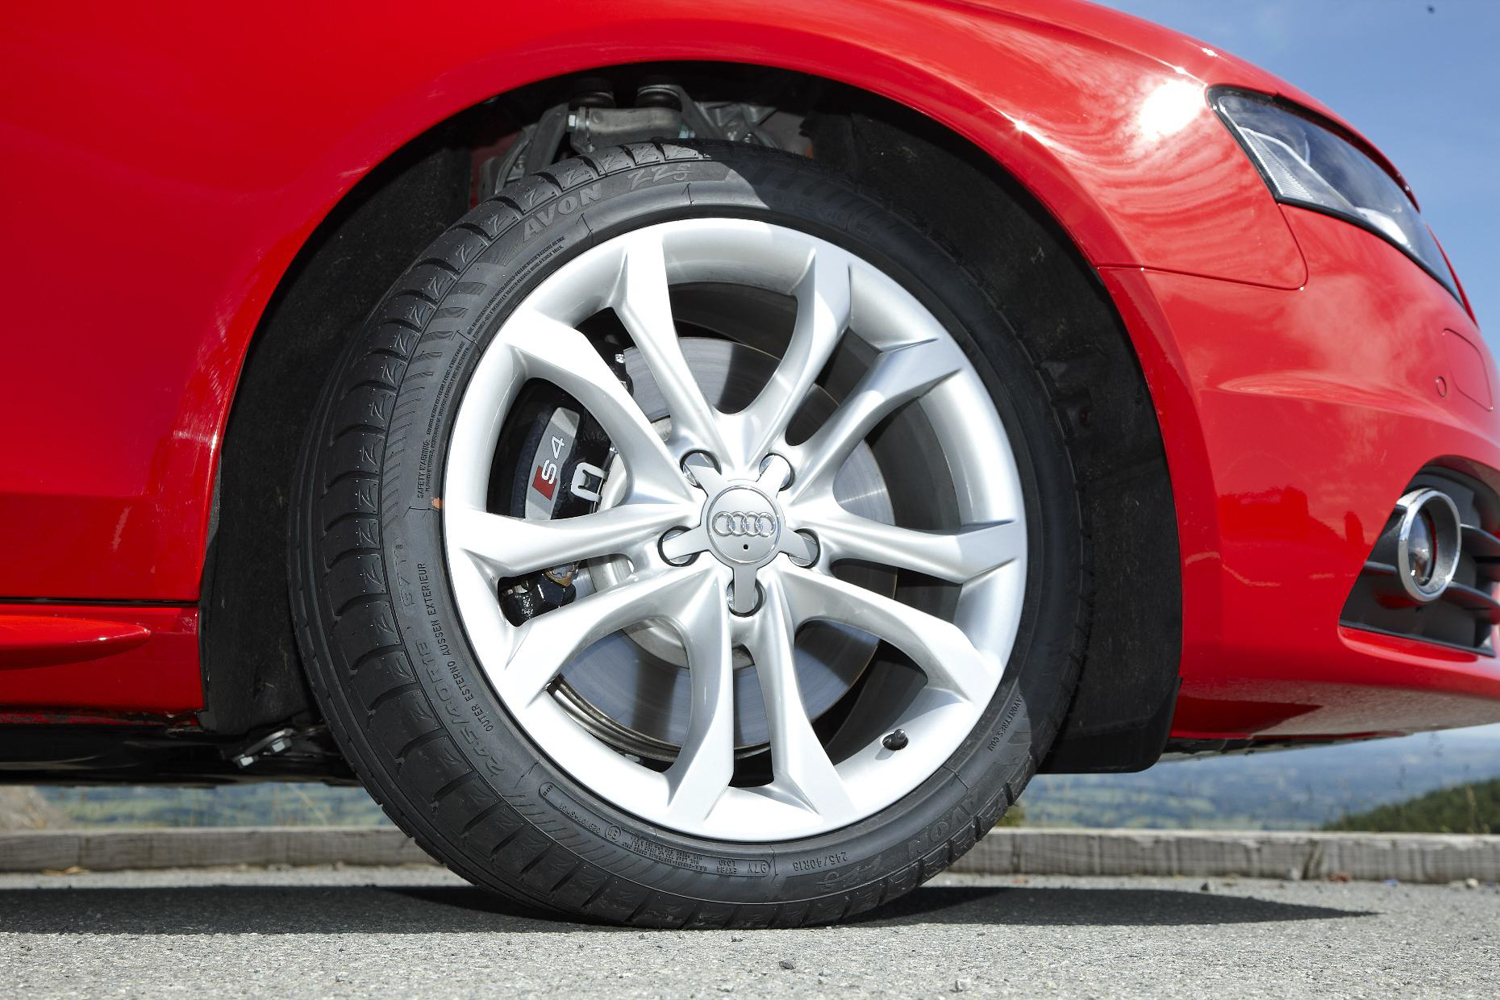 Car News | Tyres now in the emissions firing line | CompleteCar.ie